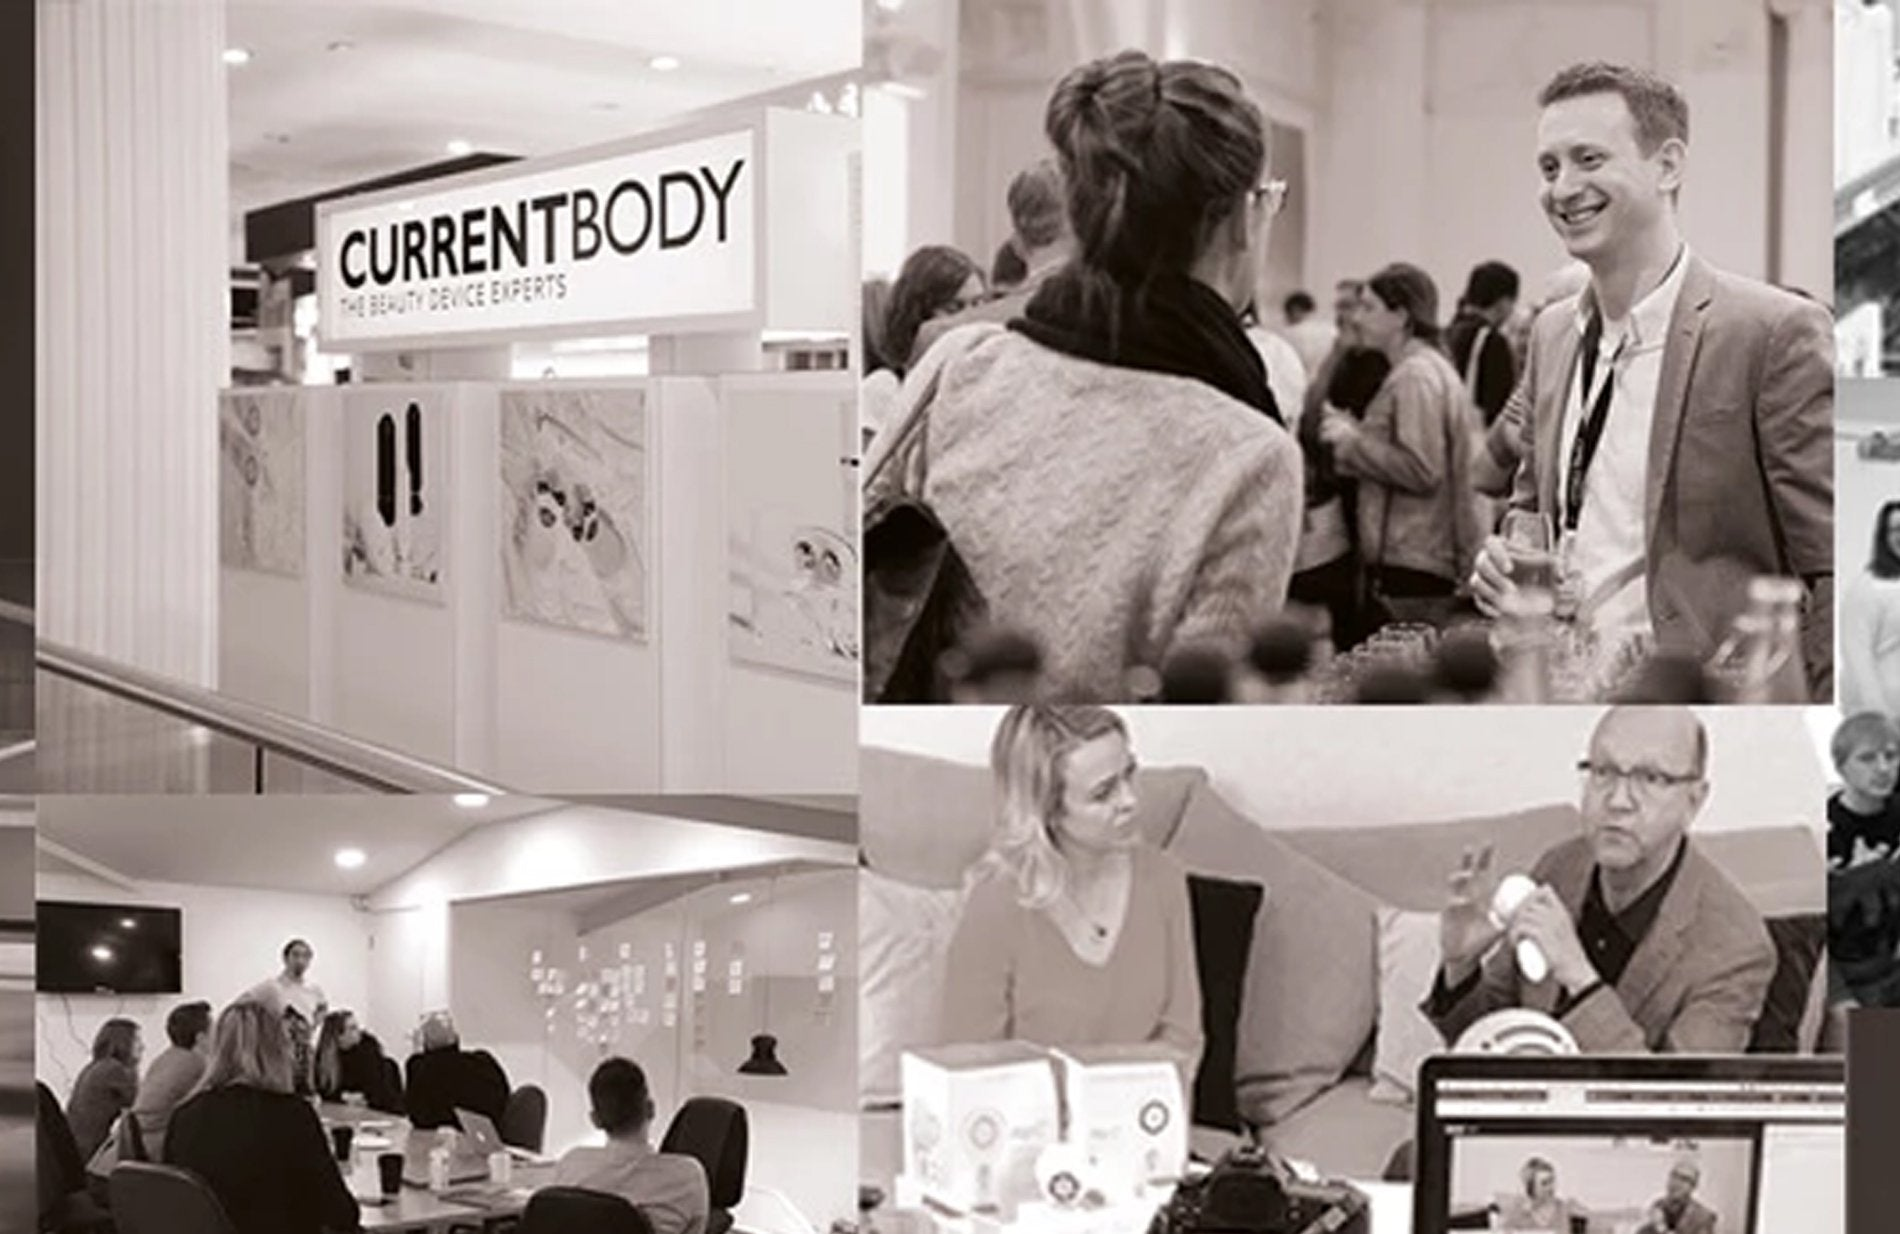 10 things you didn't know about CurrentBody